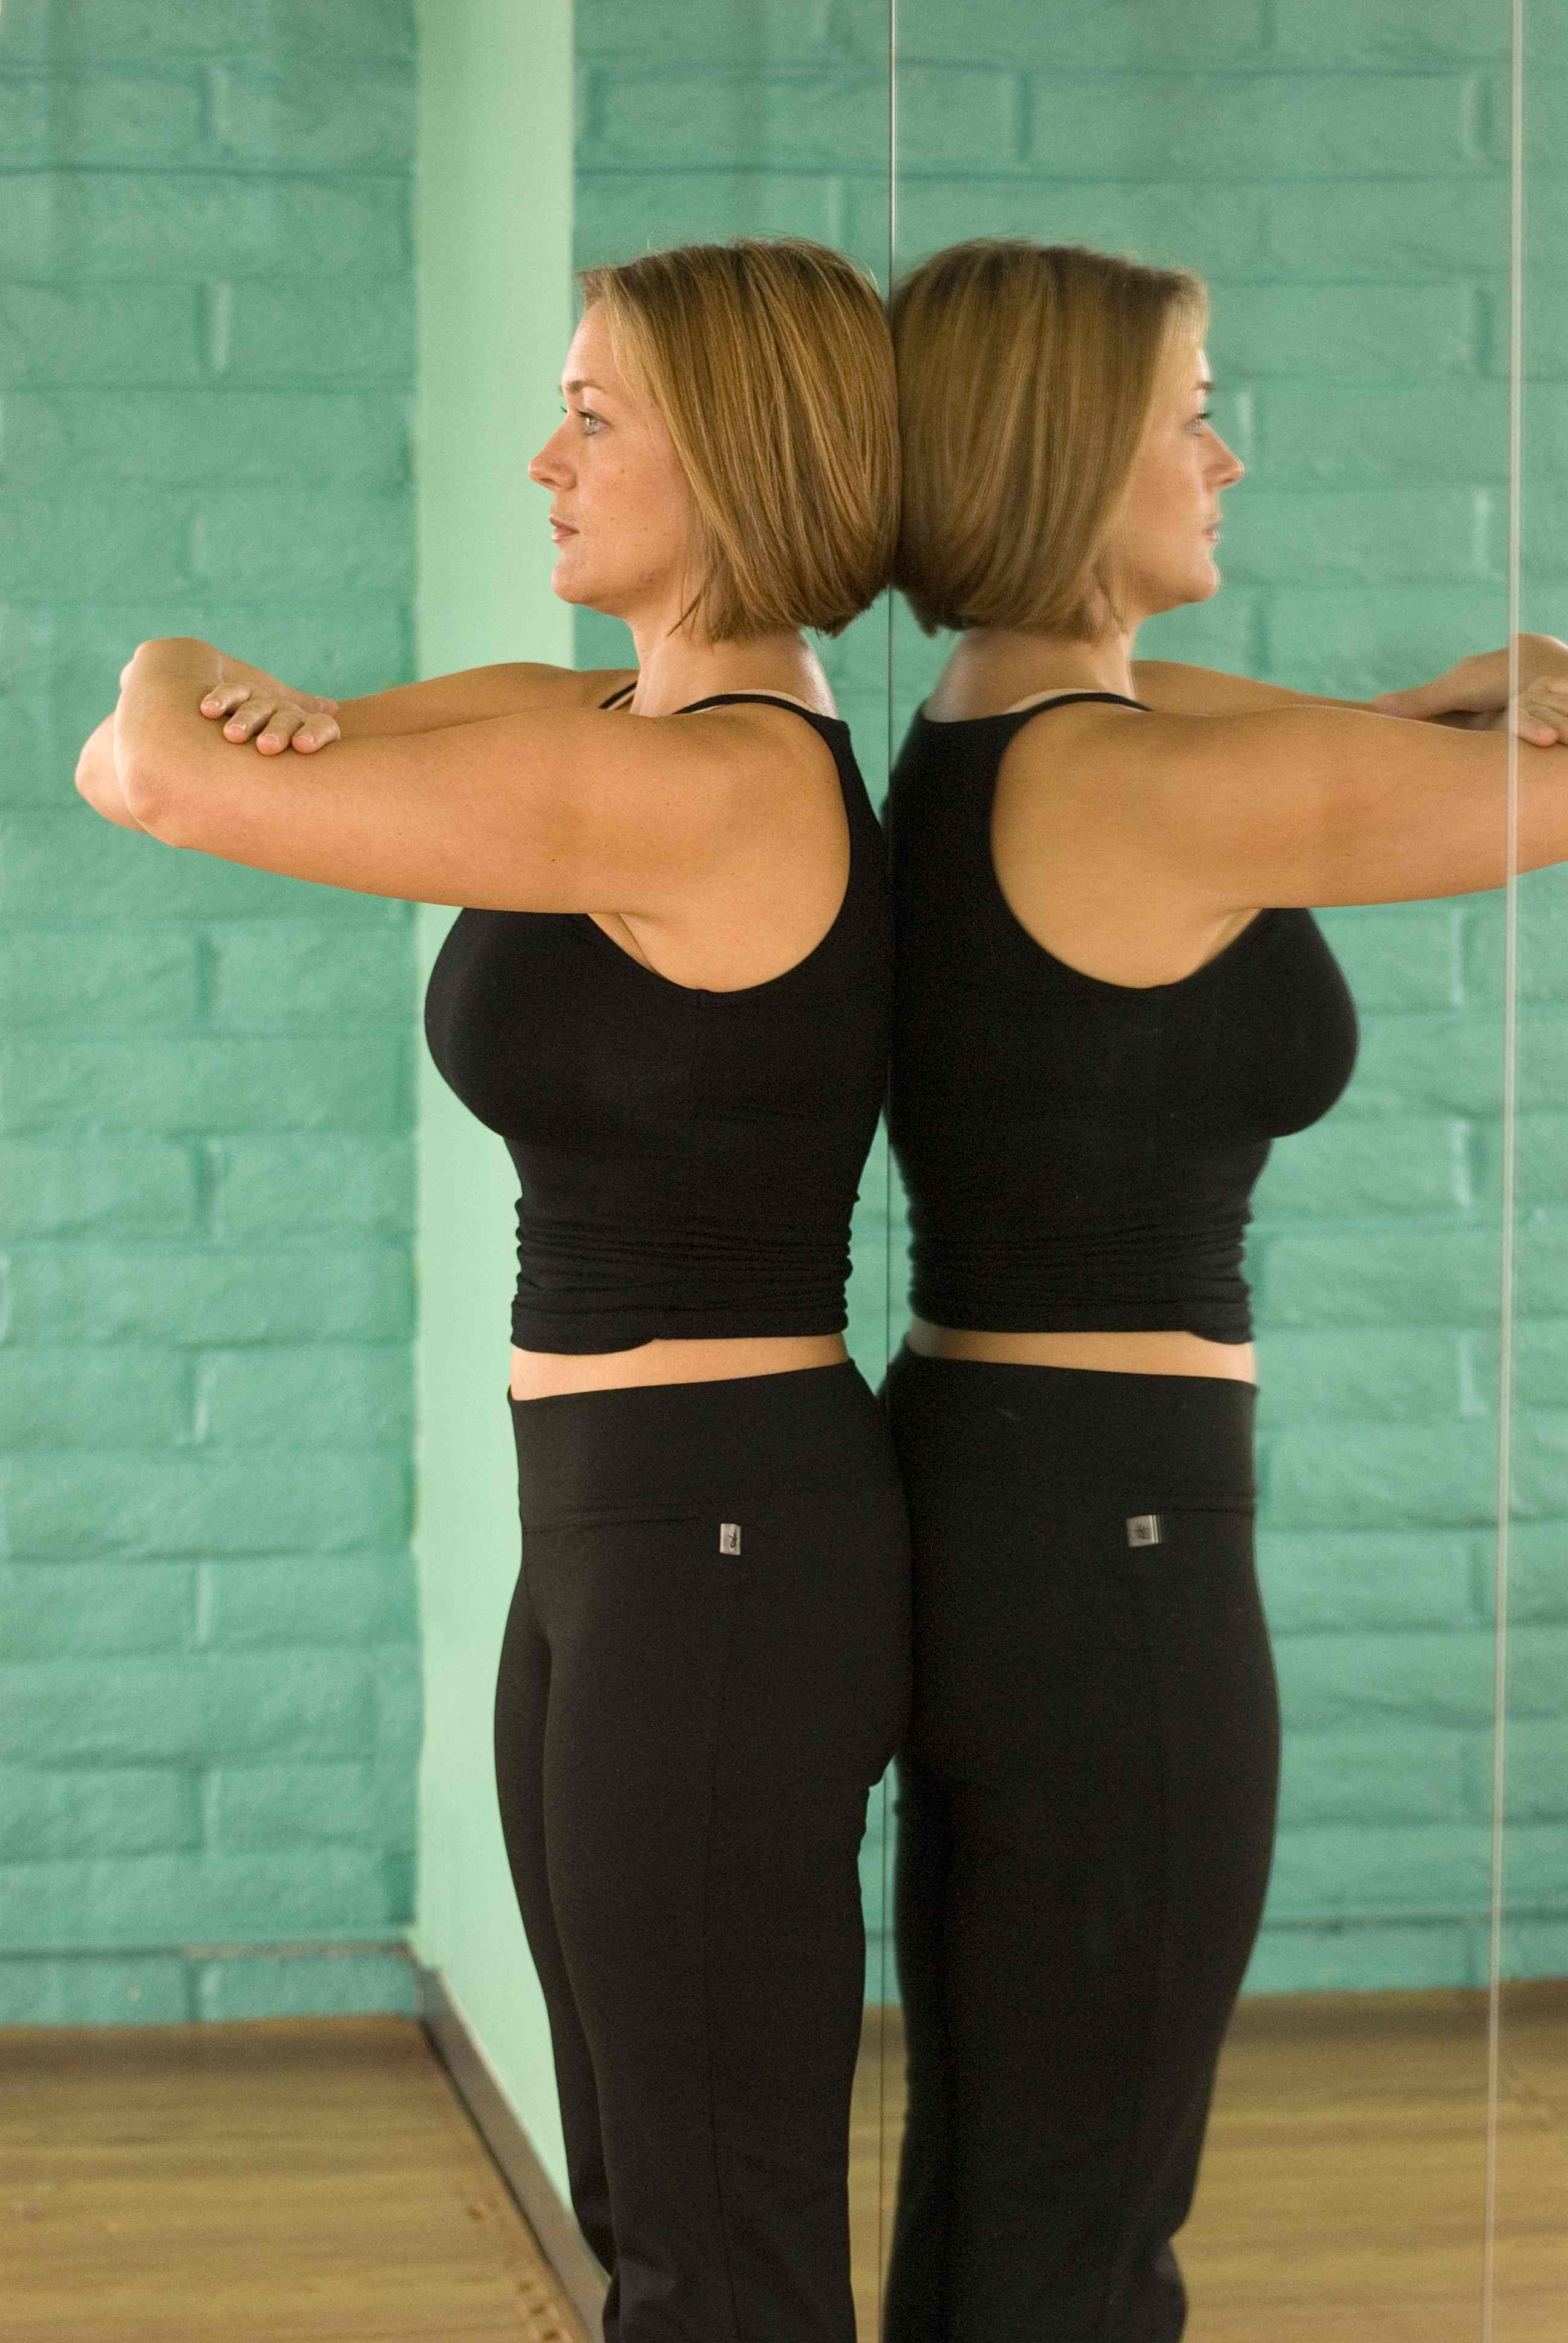 Heaven for alignment junkies: Load Bearing 101: Lessons From Katy Bowman in How to Hold Your Own Weight